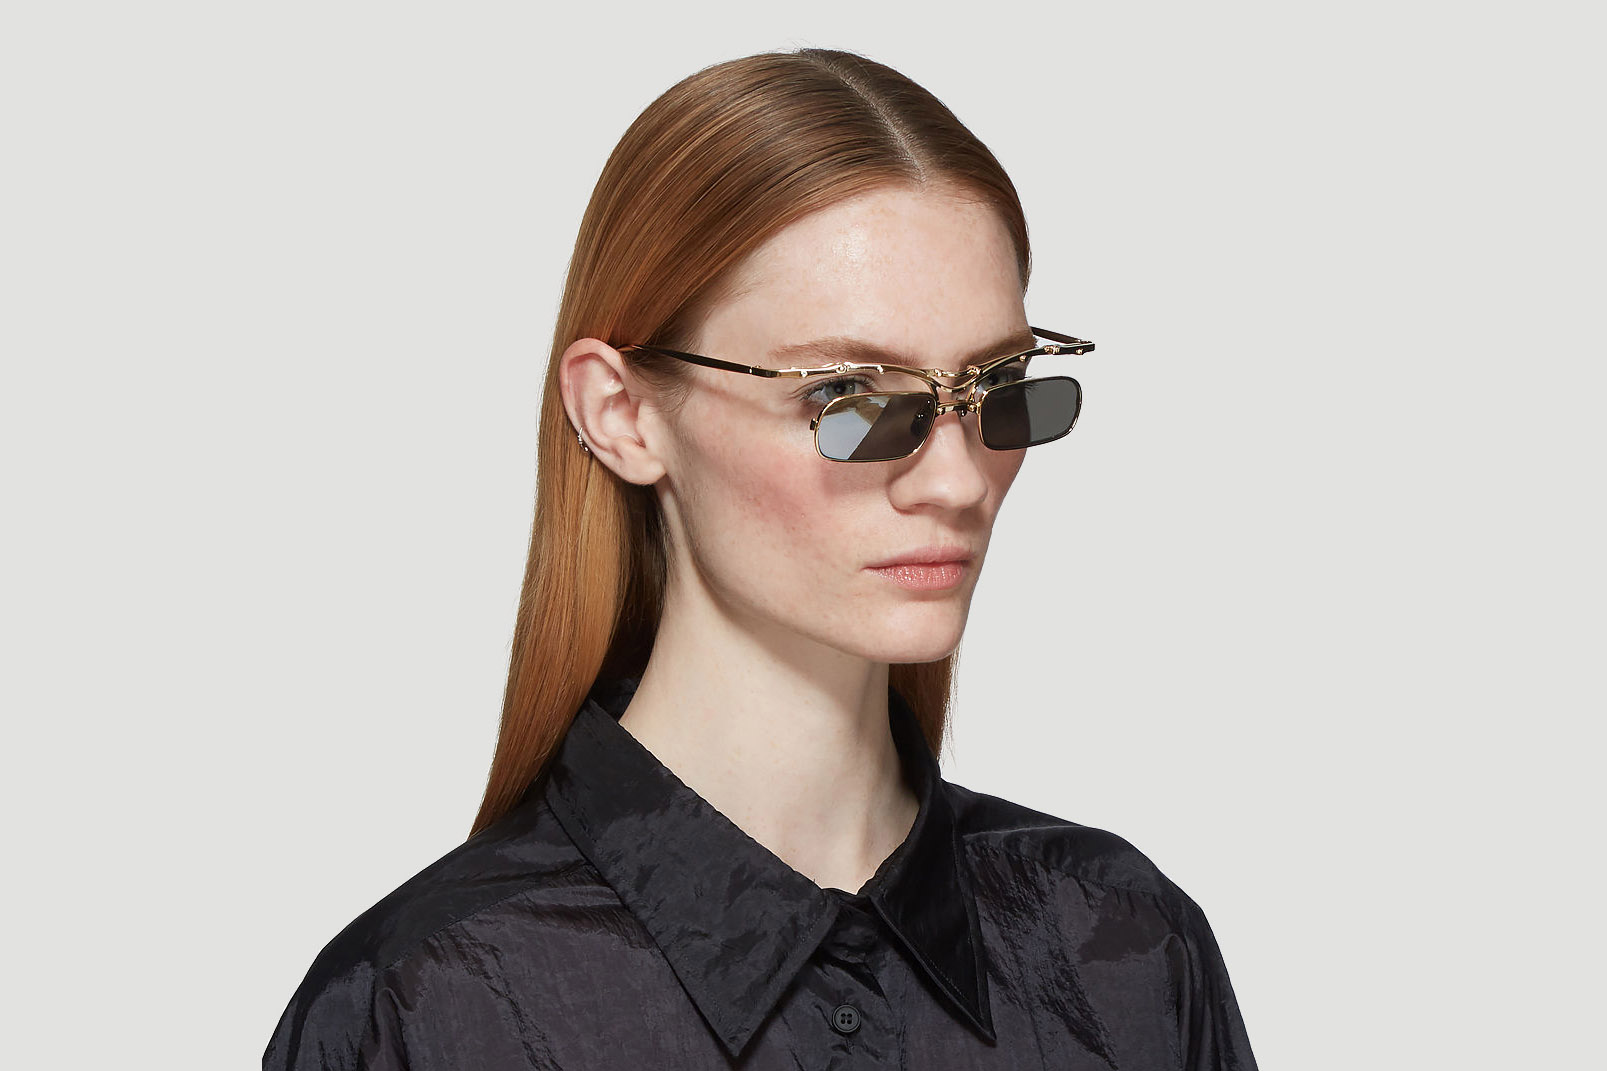 OJ2 Rectangular Sunglasses